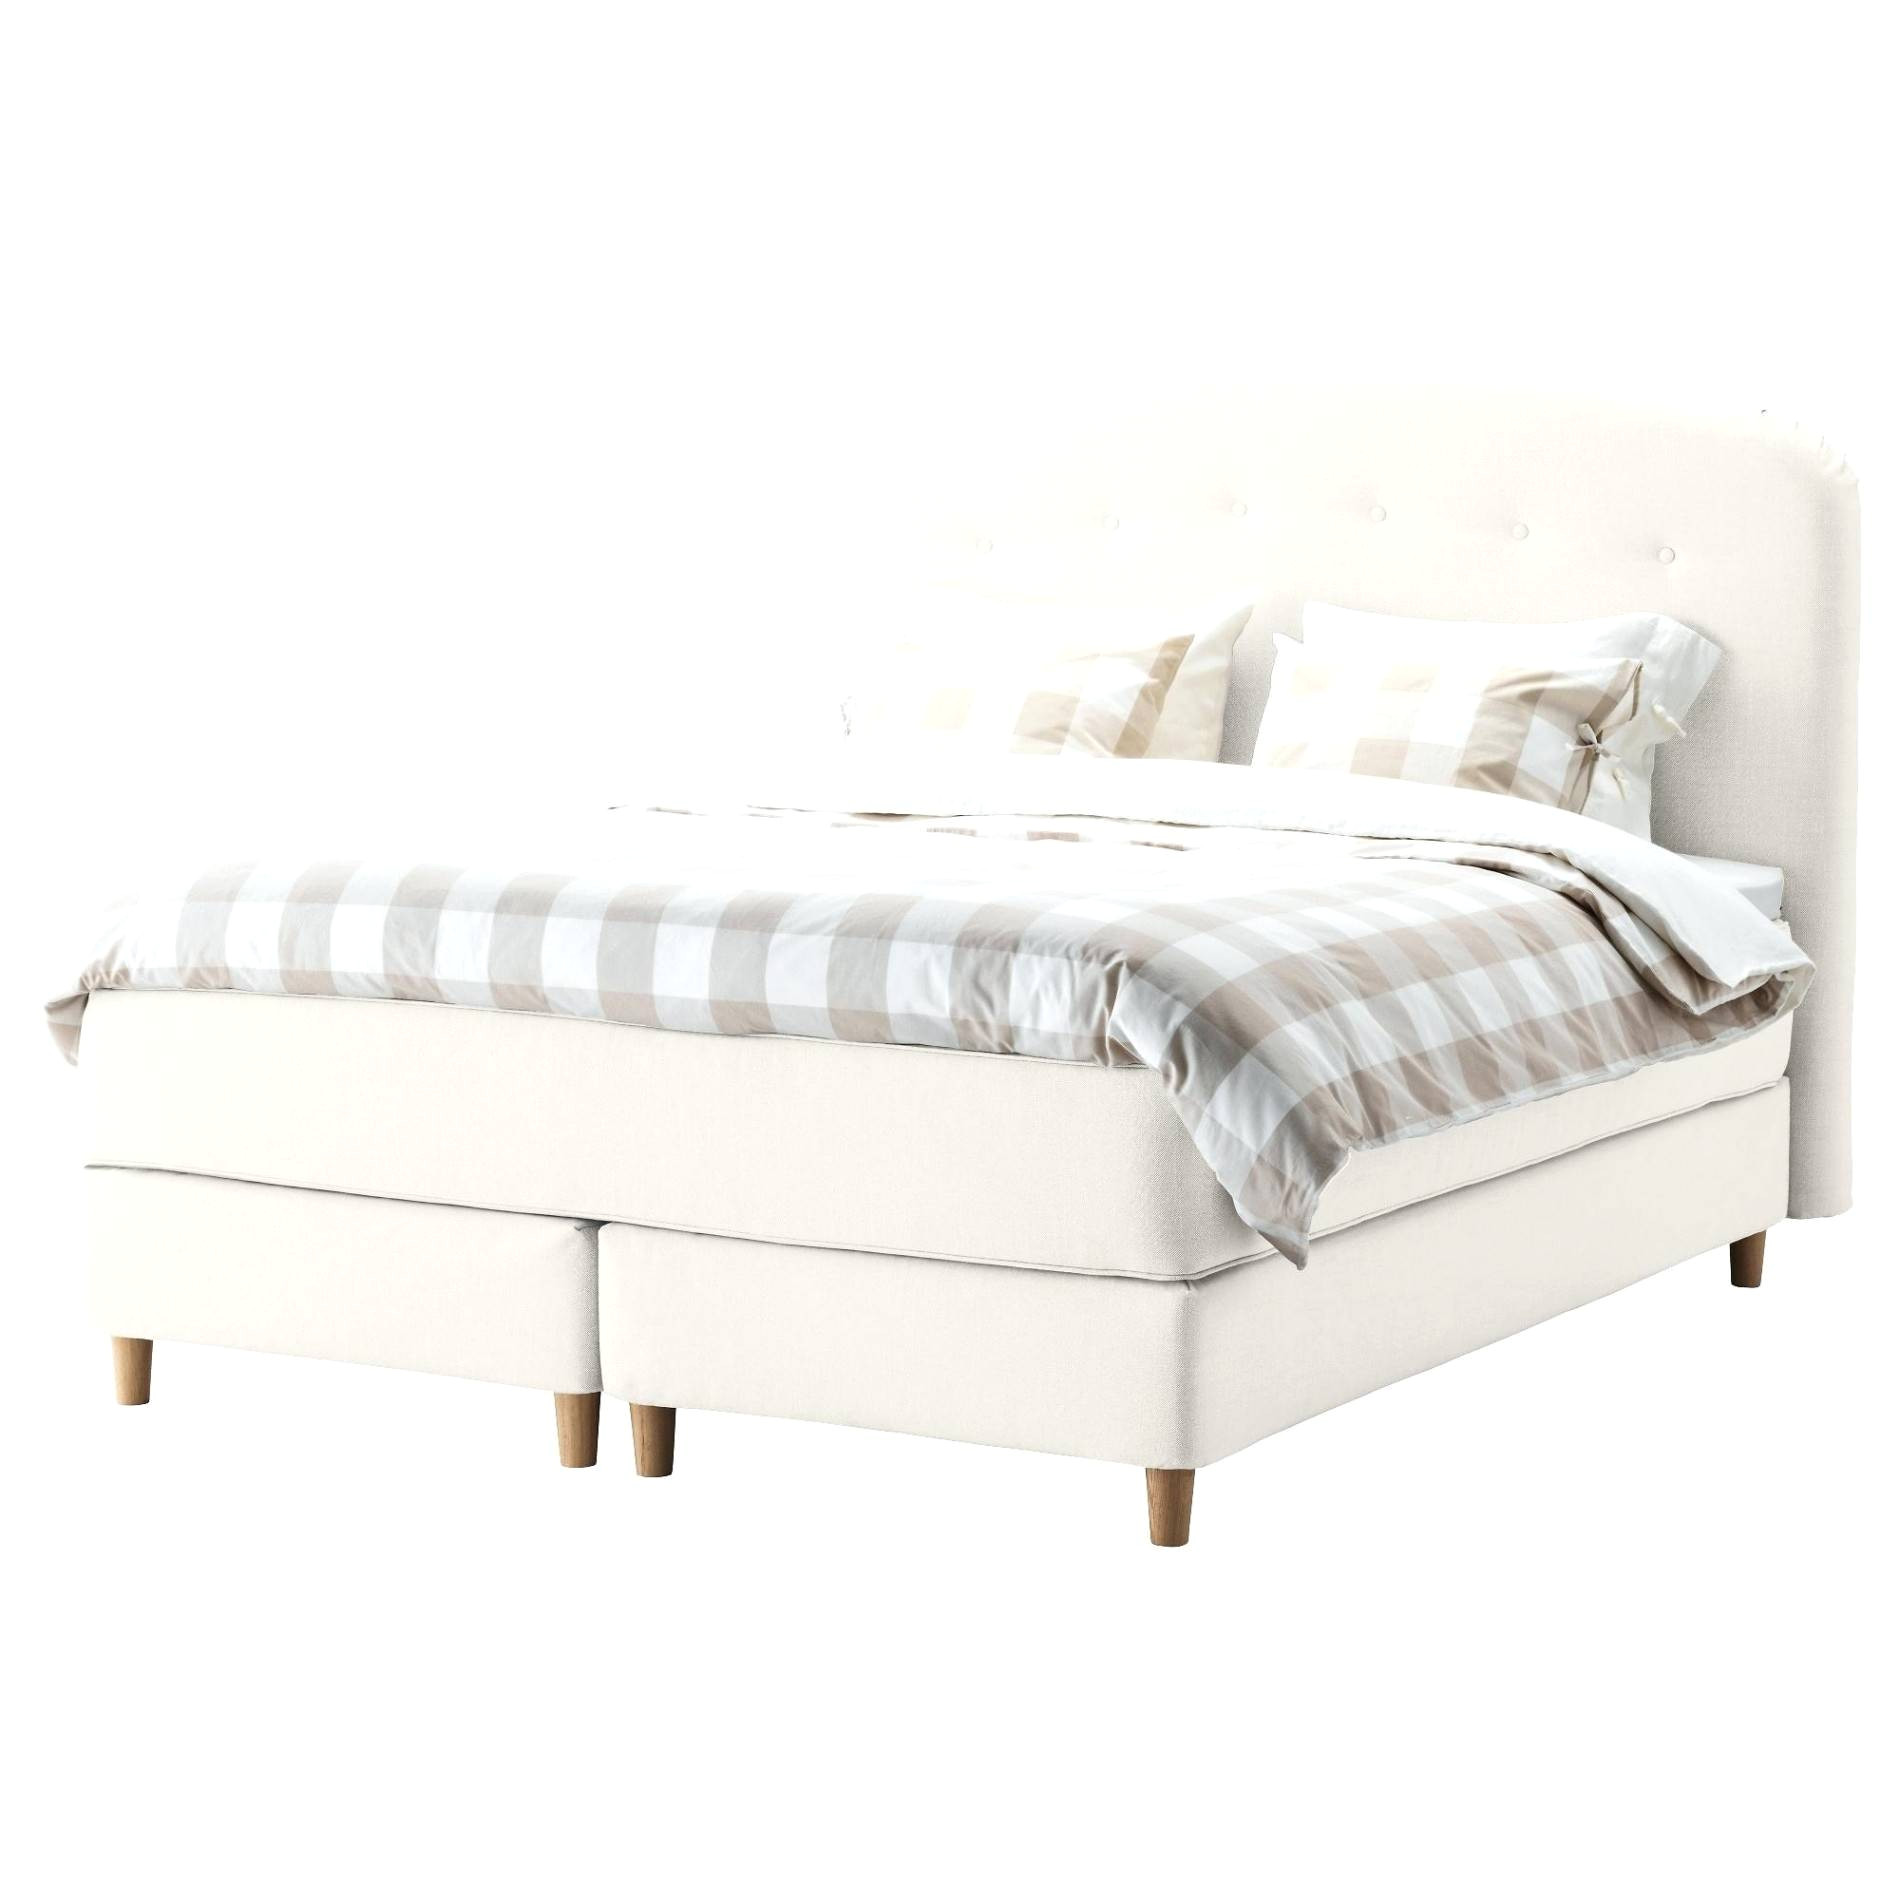 Ikea Mandal Ideas Ikea Hemnes Day Bed Bed Instructions Adinaporter